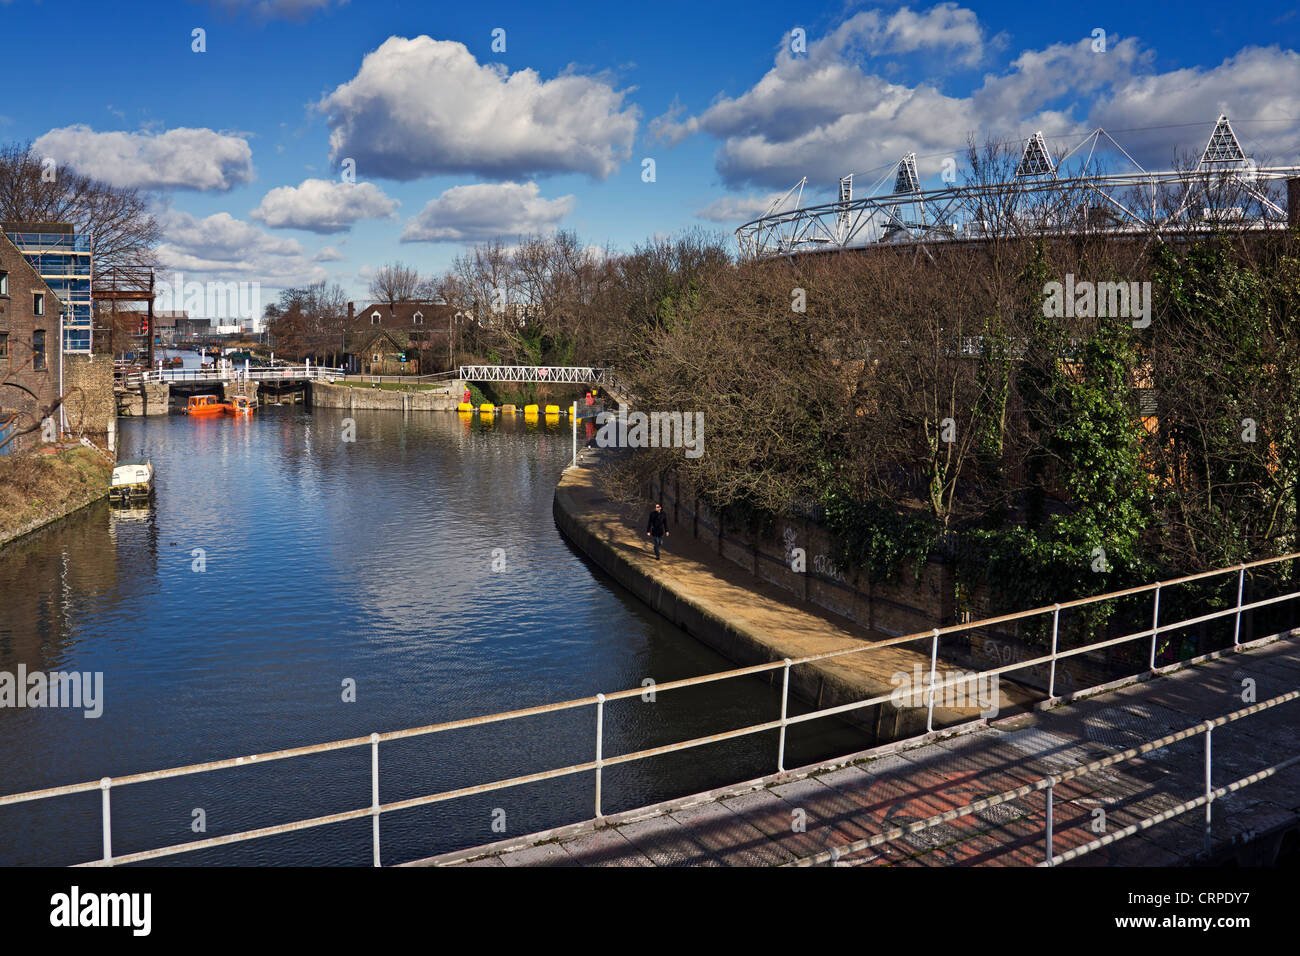 The Greenway footpath and cycleway crossing the river with the Olympic Stadium in the background. - Stock Image